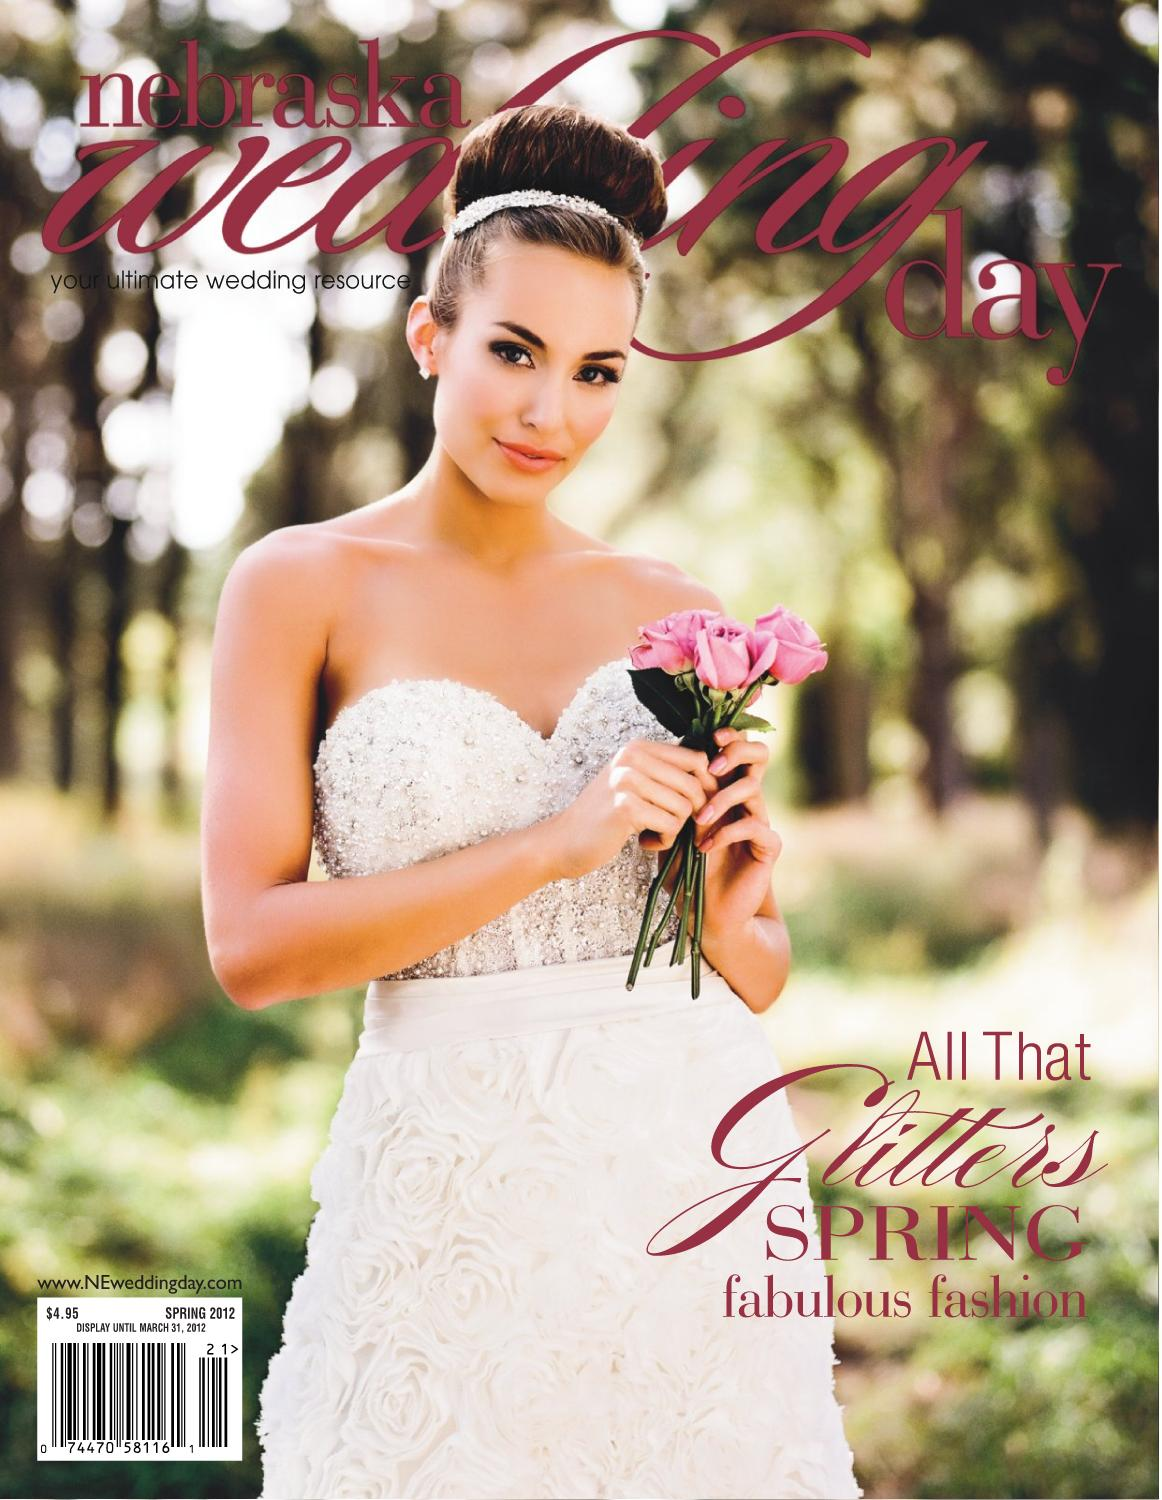 2012 Nwd Spring Issue By Nebraska Wedding Day Issuu